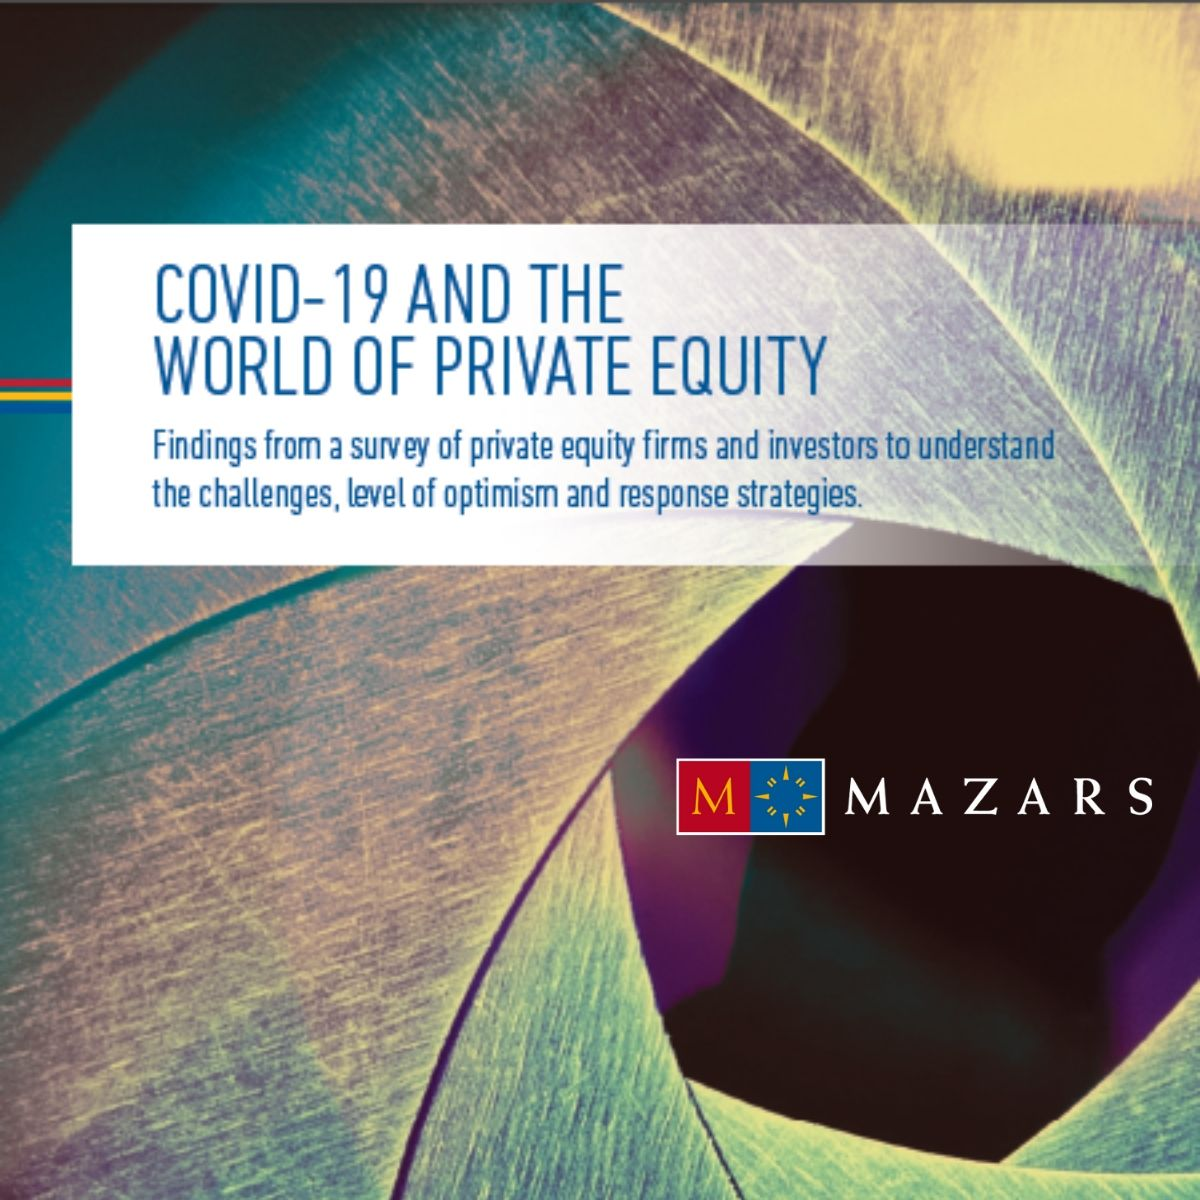 COVID-19 and the World of Private Equity